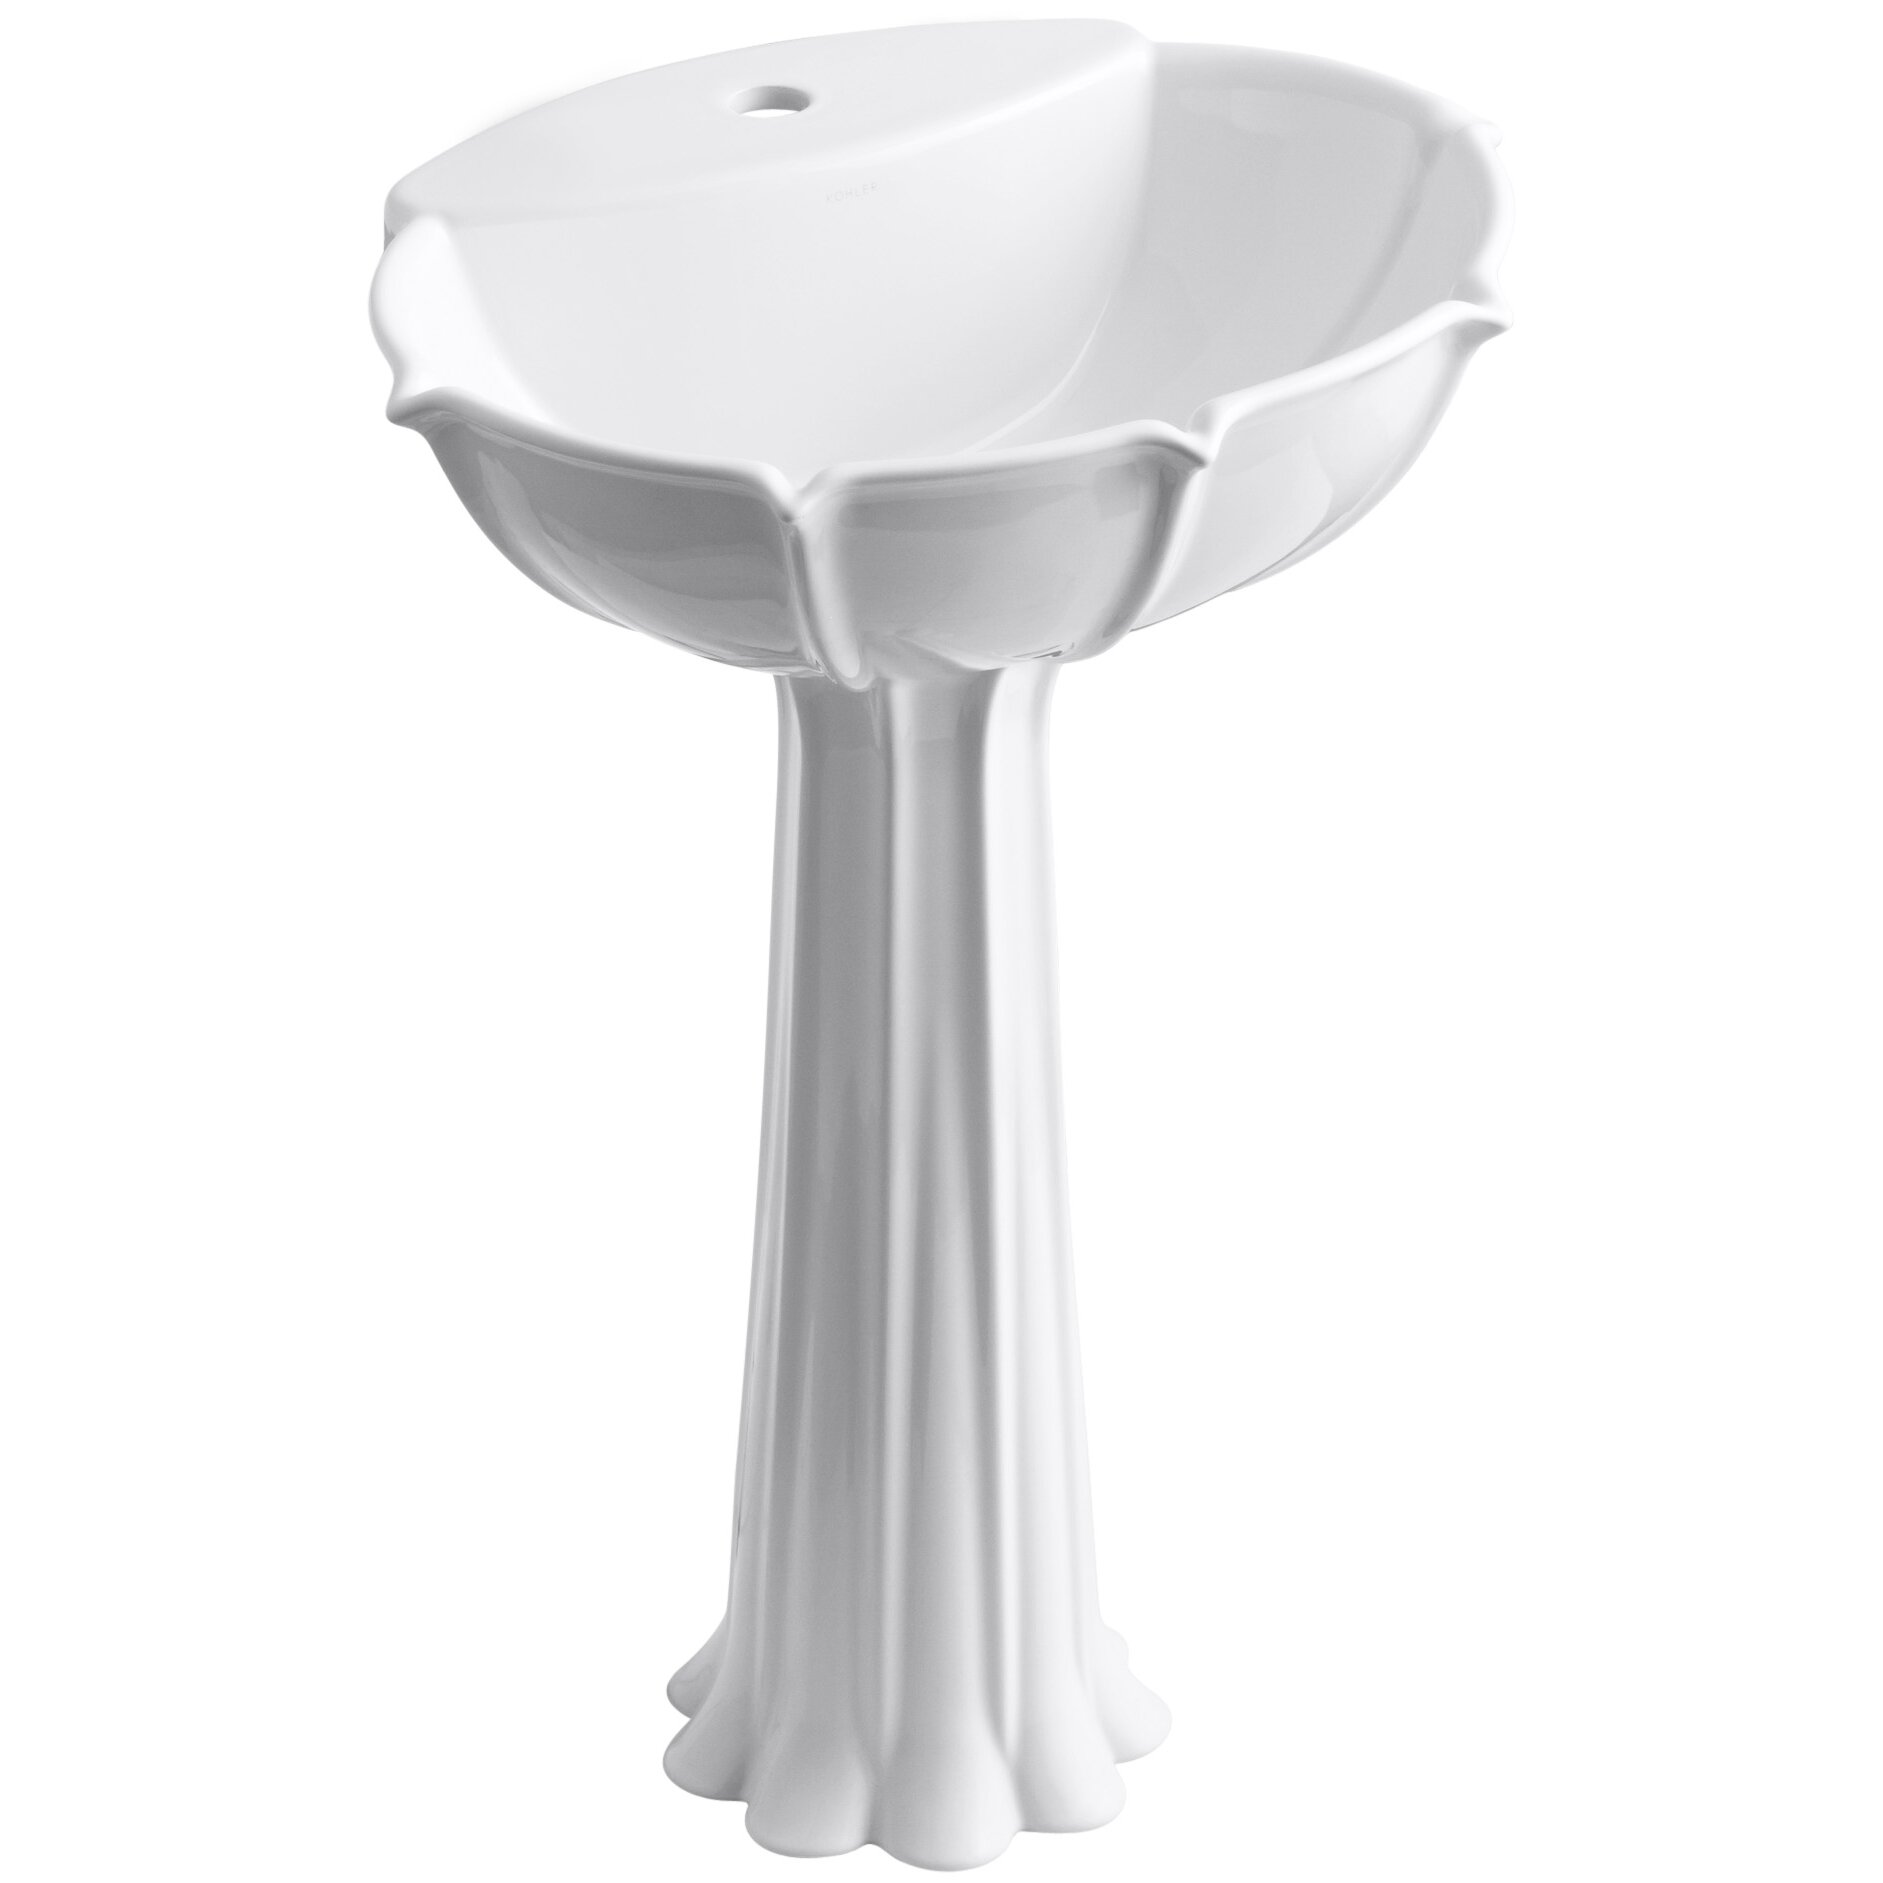 Single Hole Pedestal Sink : Bathroom Vanities Bathroom Sinks Bathroom Faucets Bathtubs Showers ...